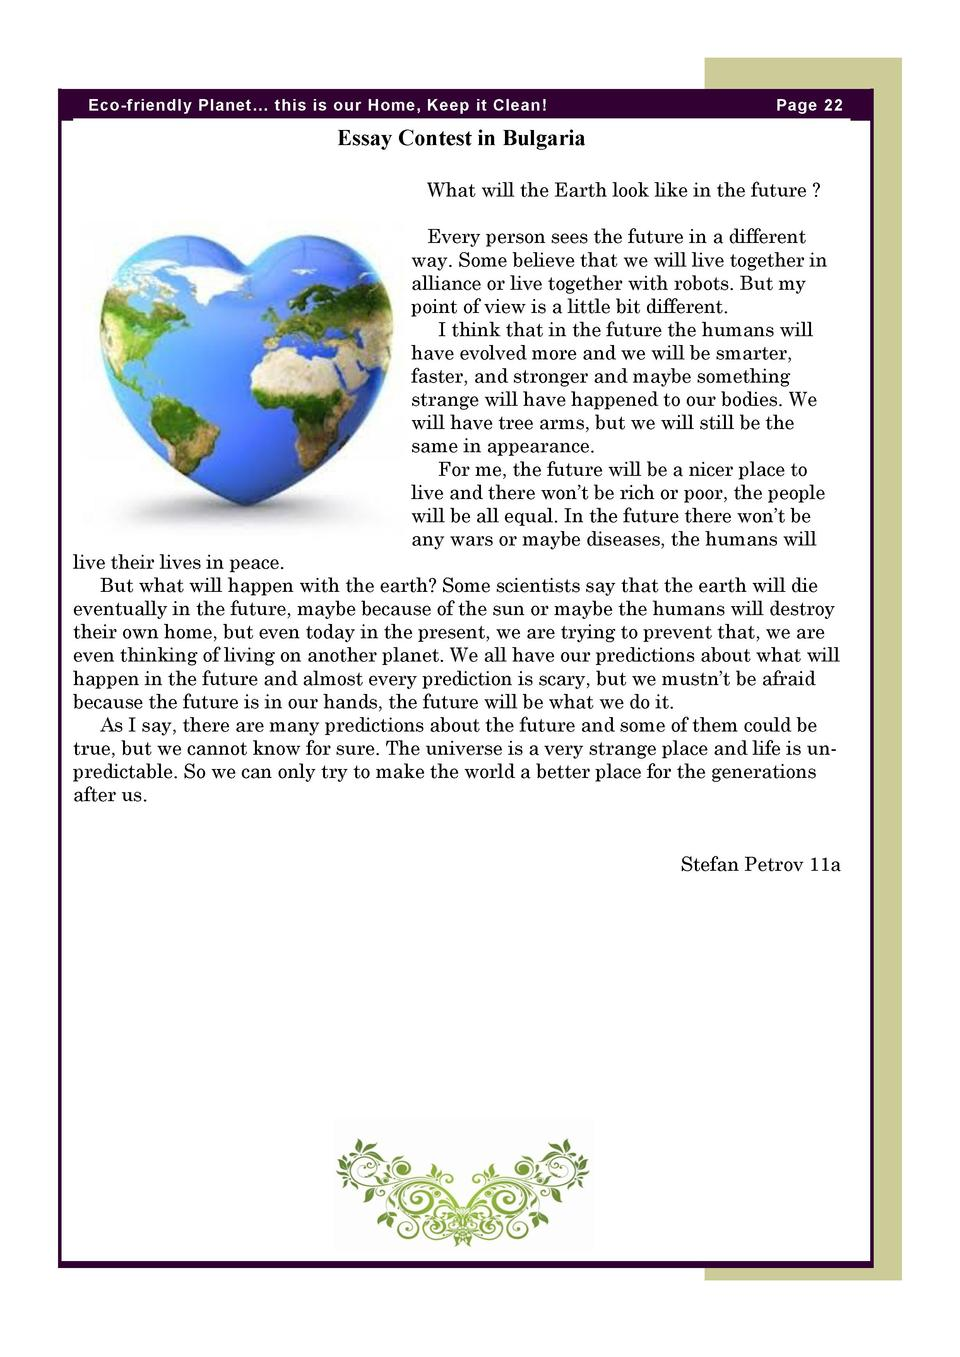 protecting our earth essay Let's teach our children to conserve energy, recycle, and keep our neighborhoods clean every day below are five reasons why we should take care of the earth it's the only home we have.